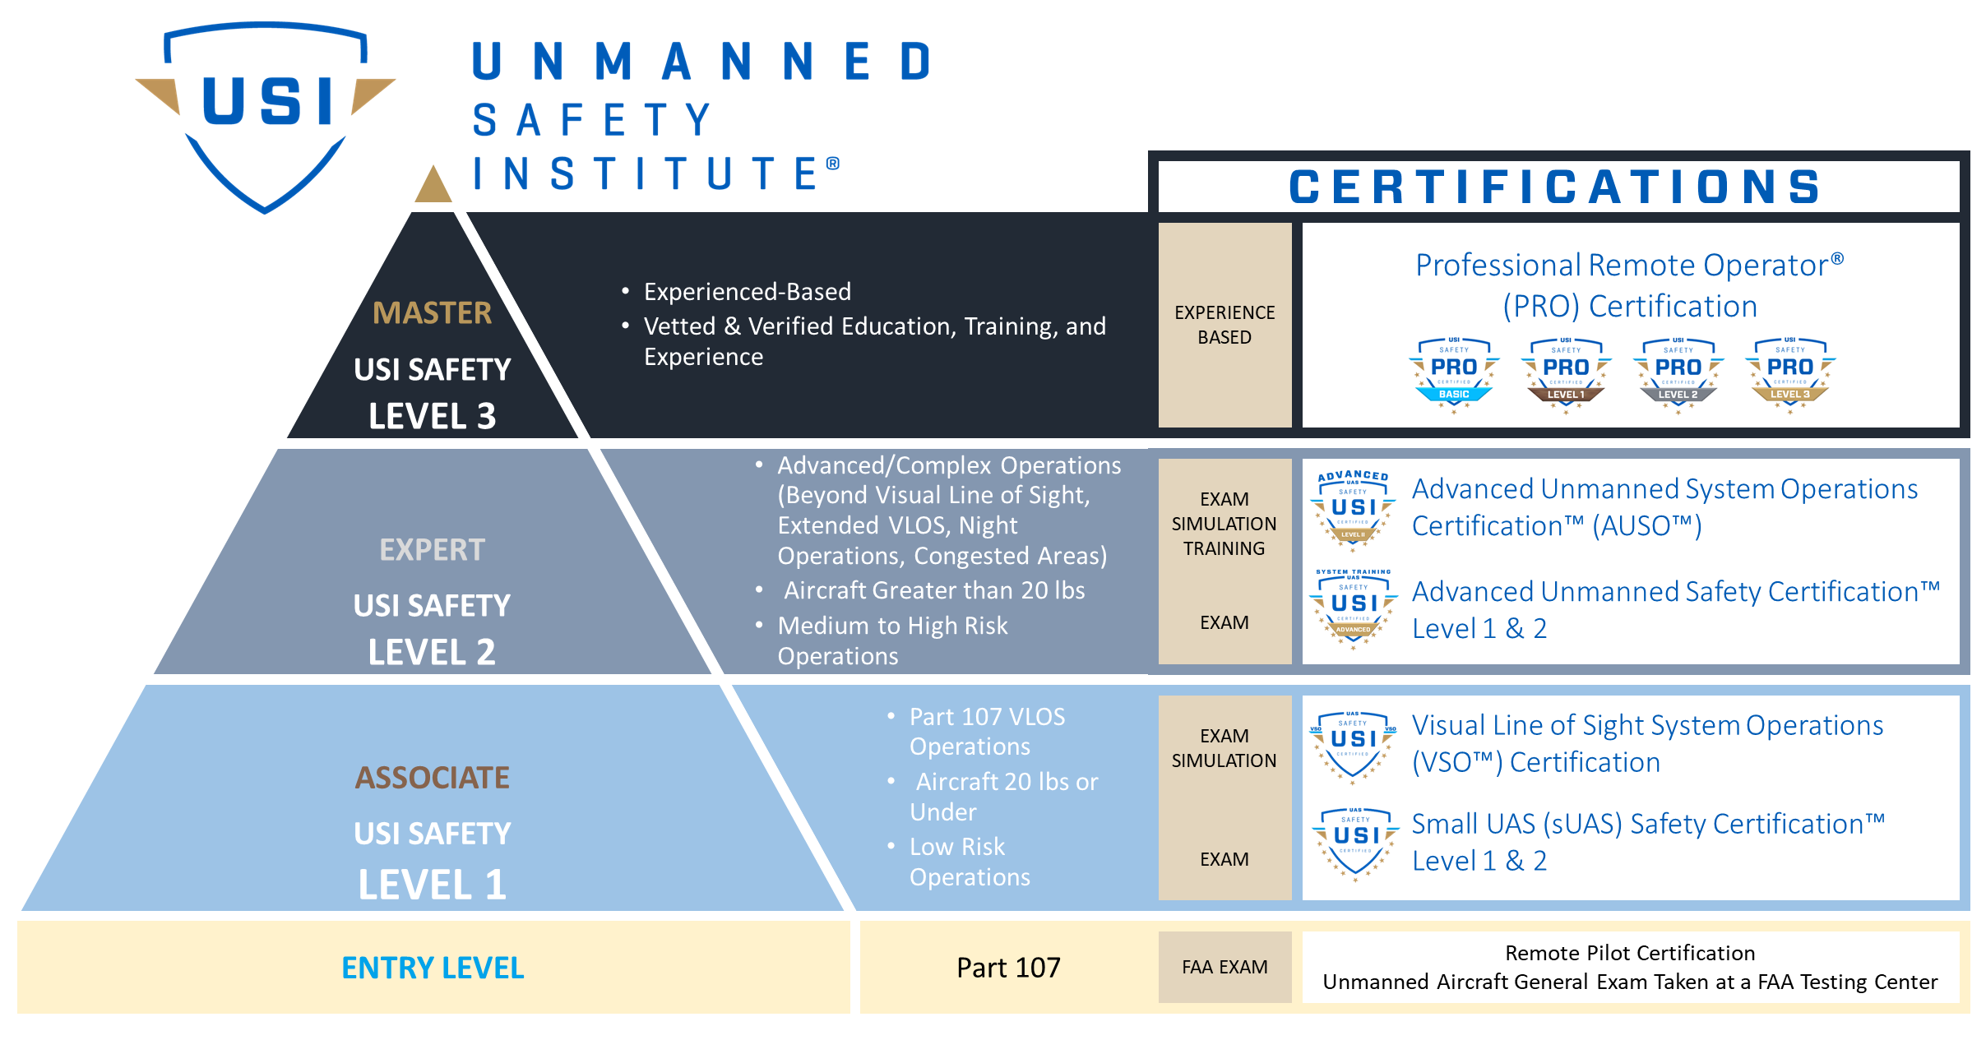 Certification Structure 2019-1